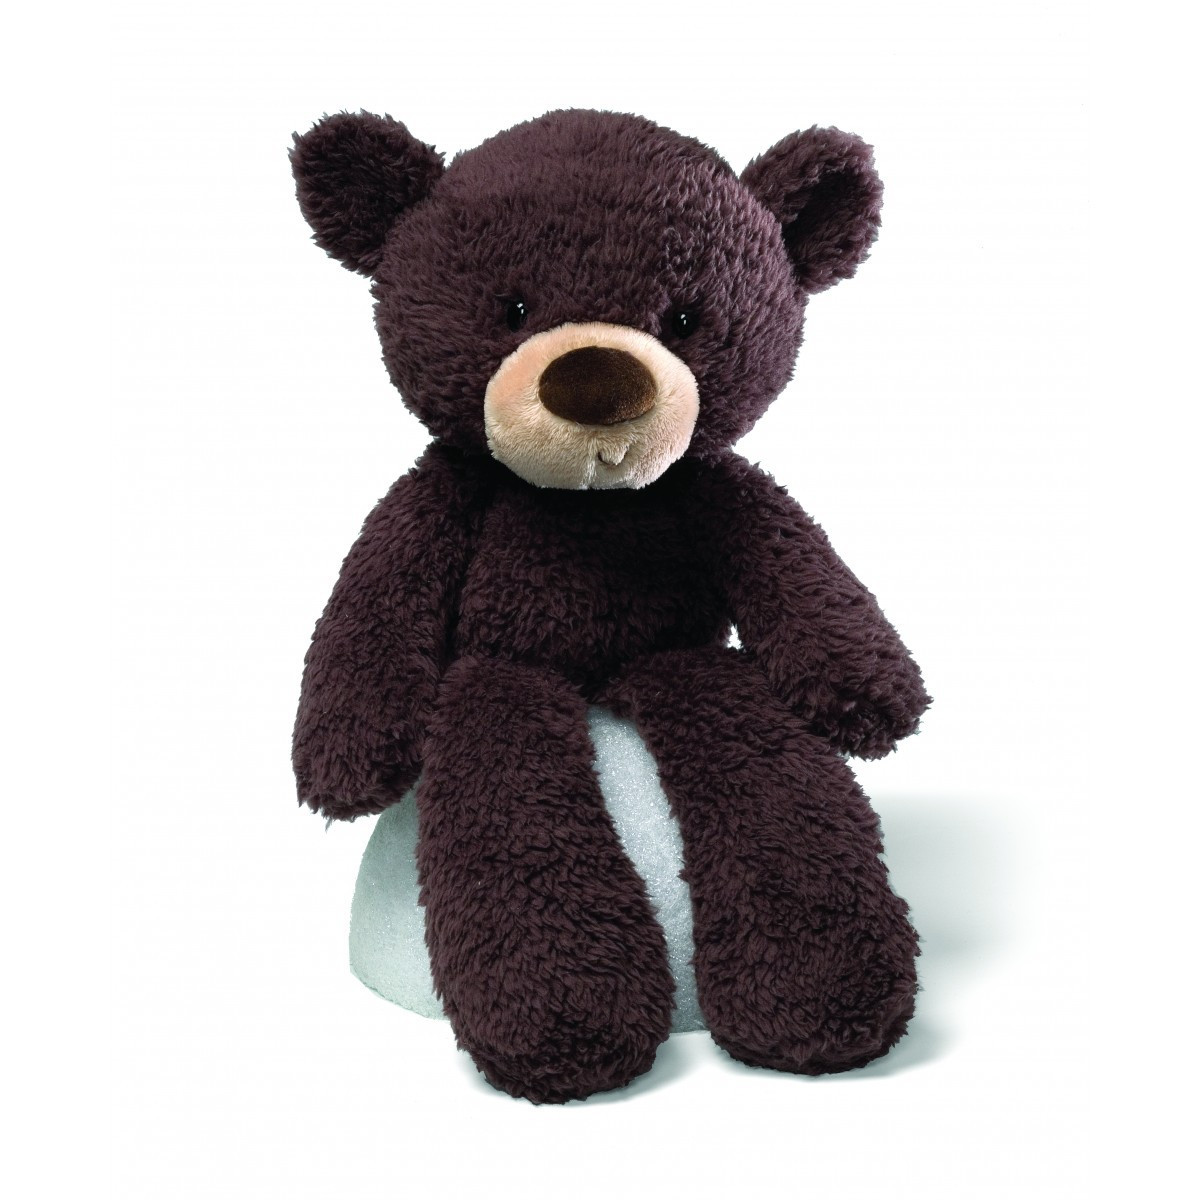 3f93adfab5d8 Gund Fuzzy 38cm Plush Toy Bear   Chocolate Brown - Buy Plush Teddy ...